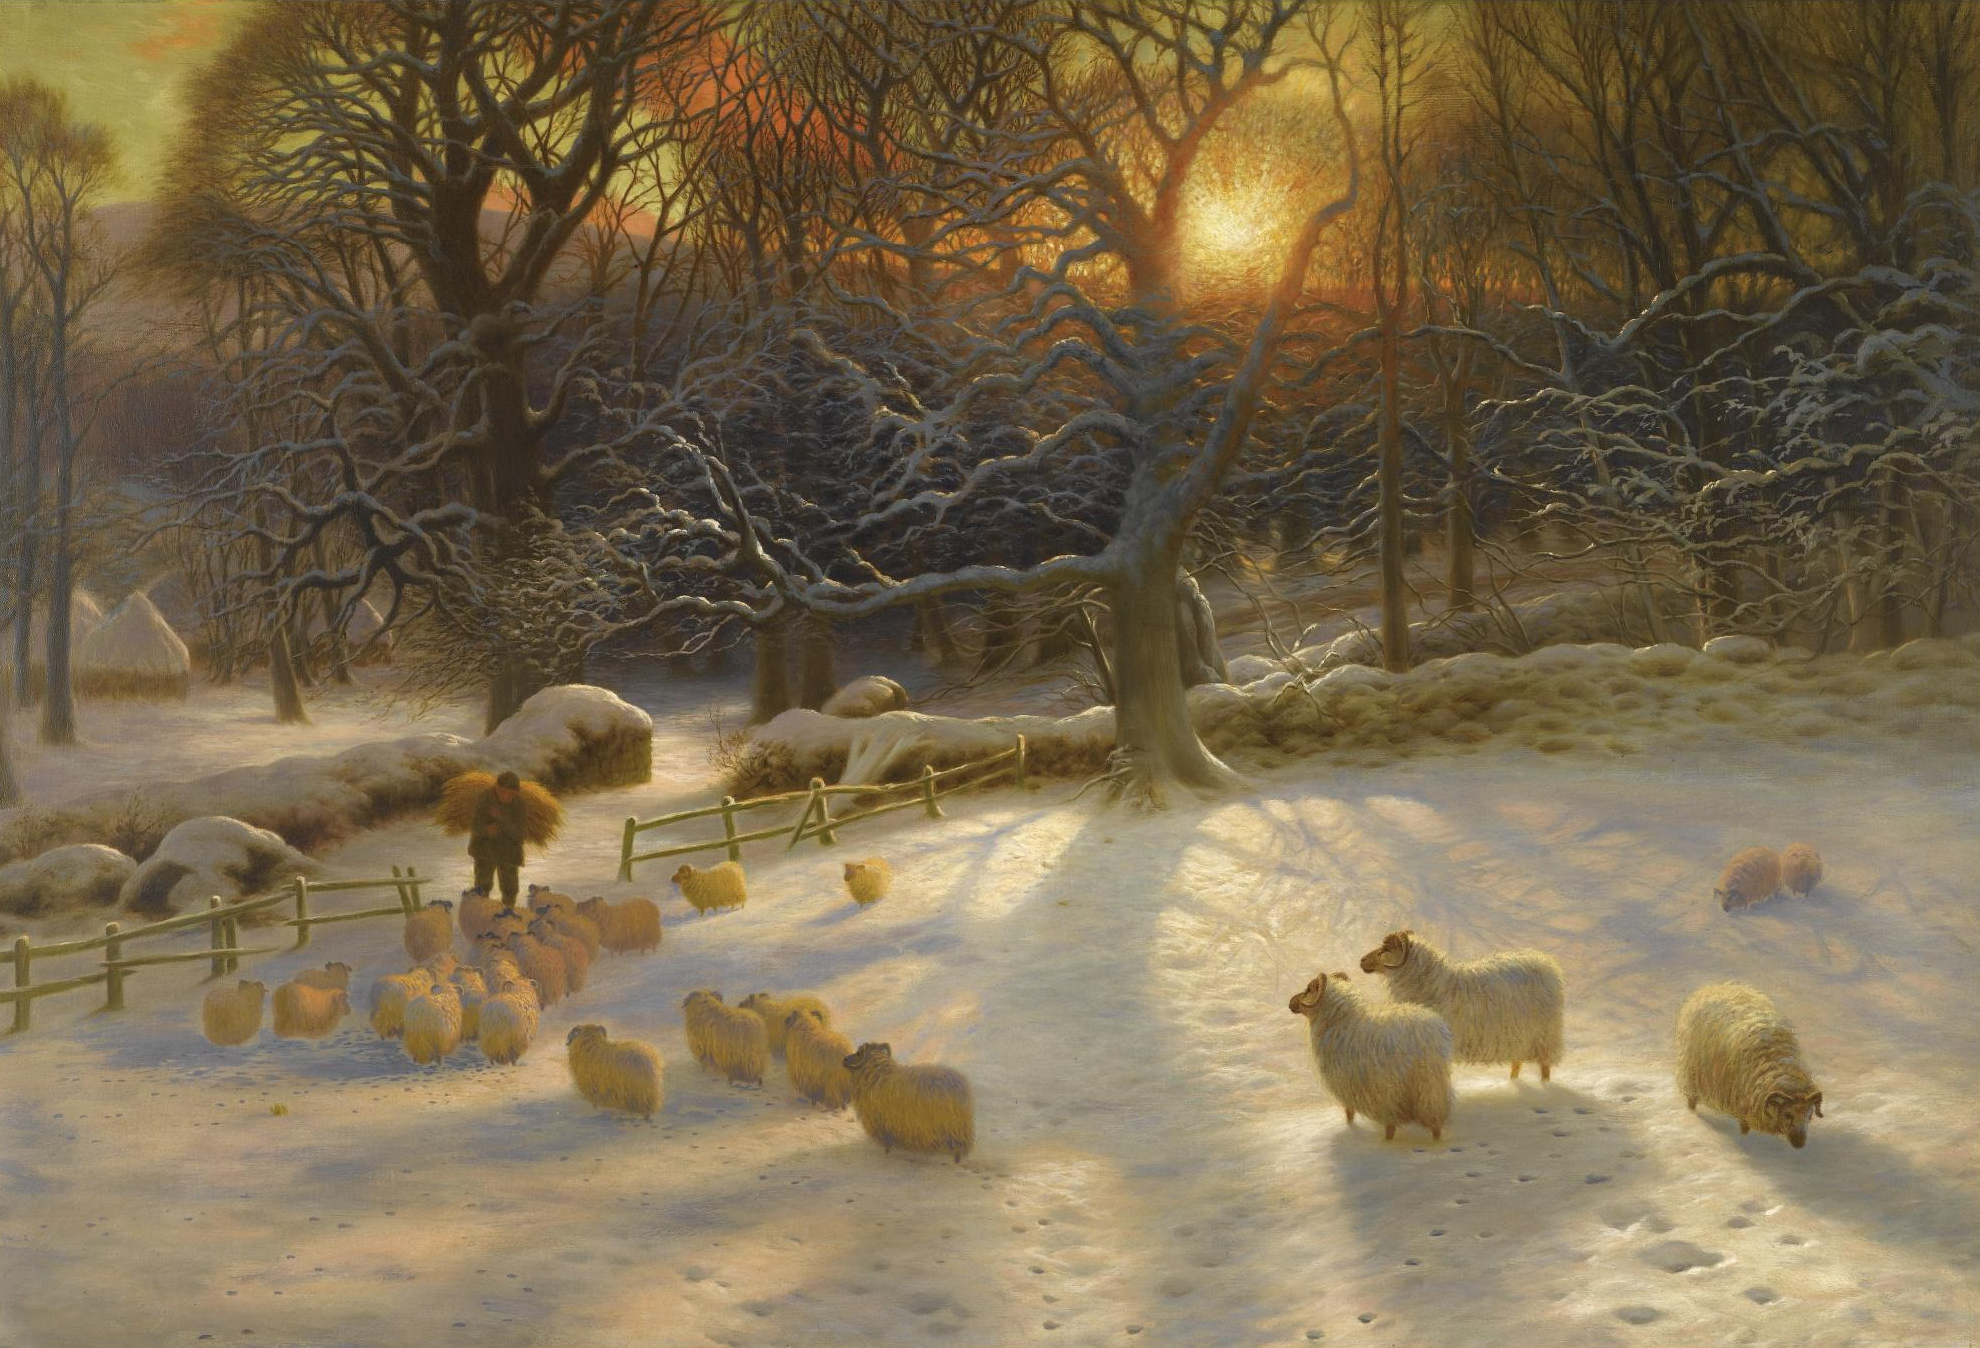 File:The shortening winter's day is near a close Farquharson.jpg